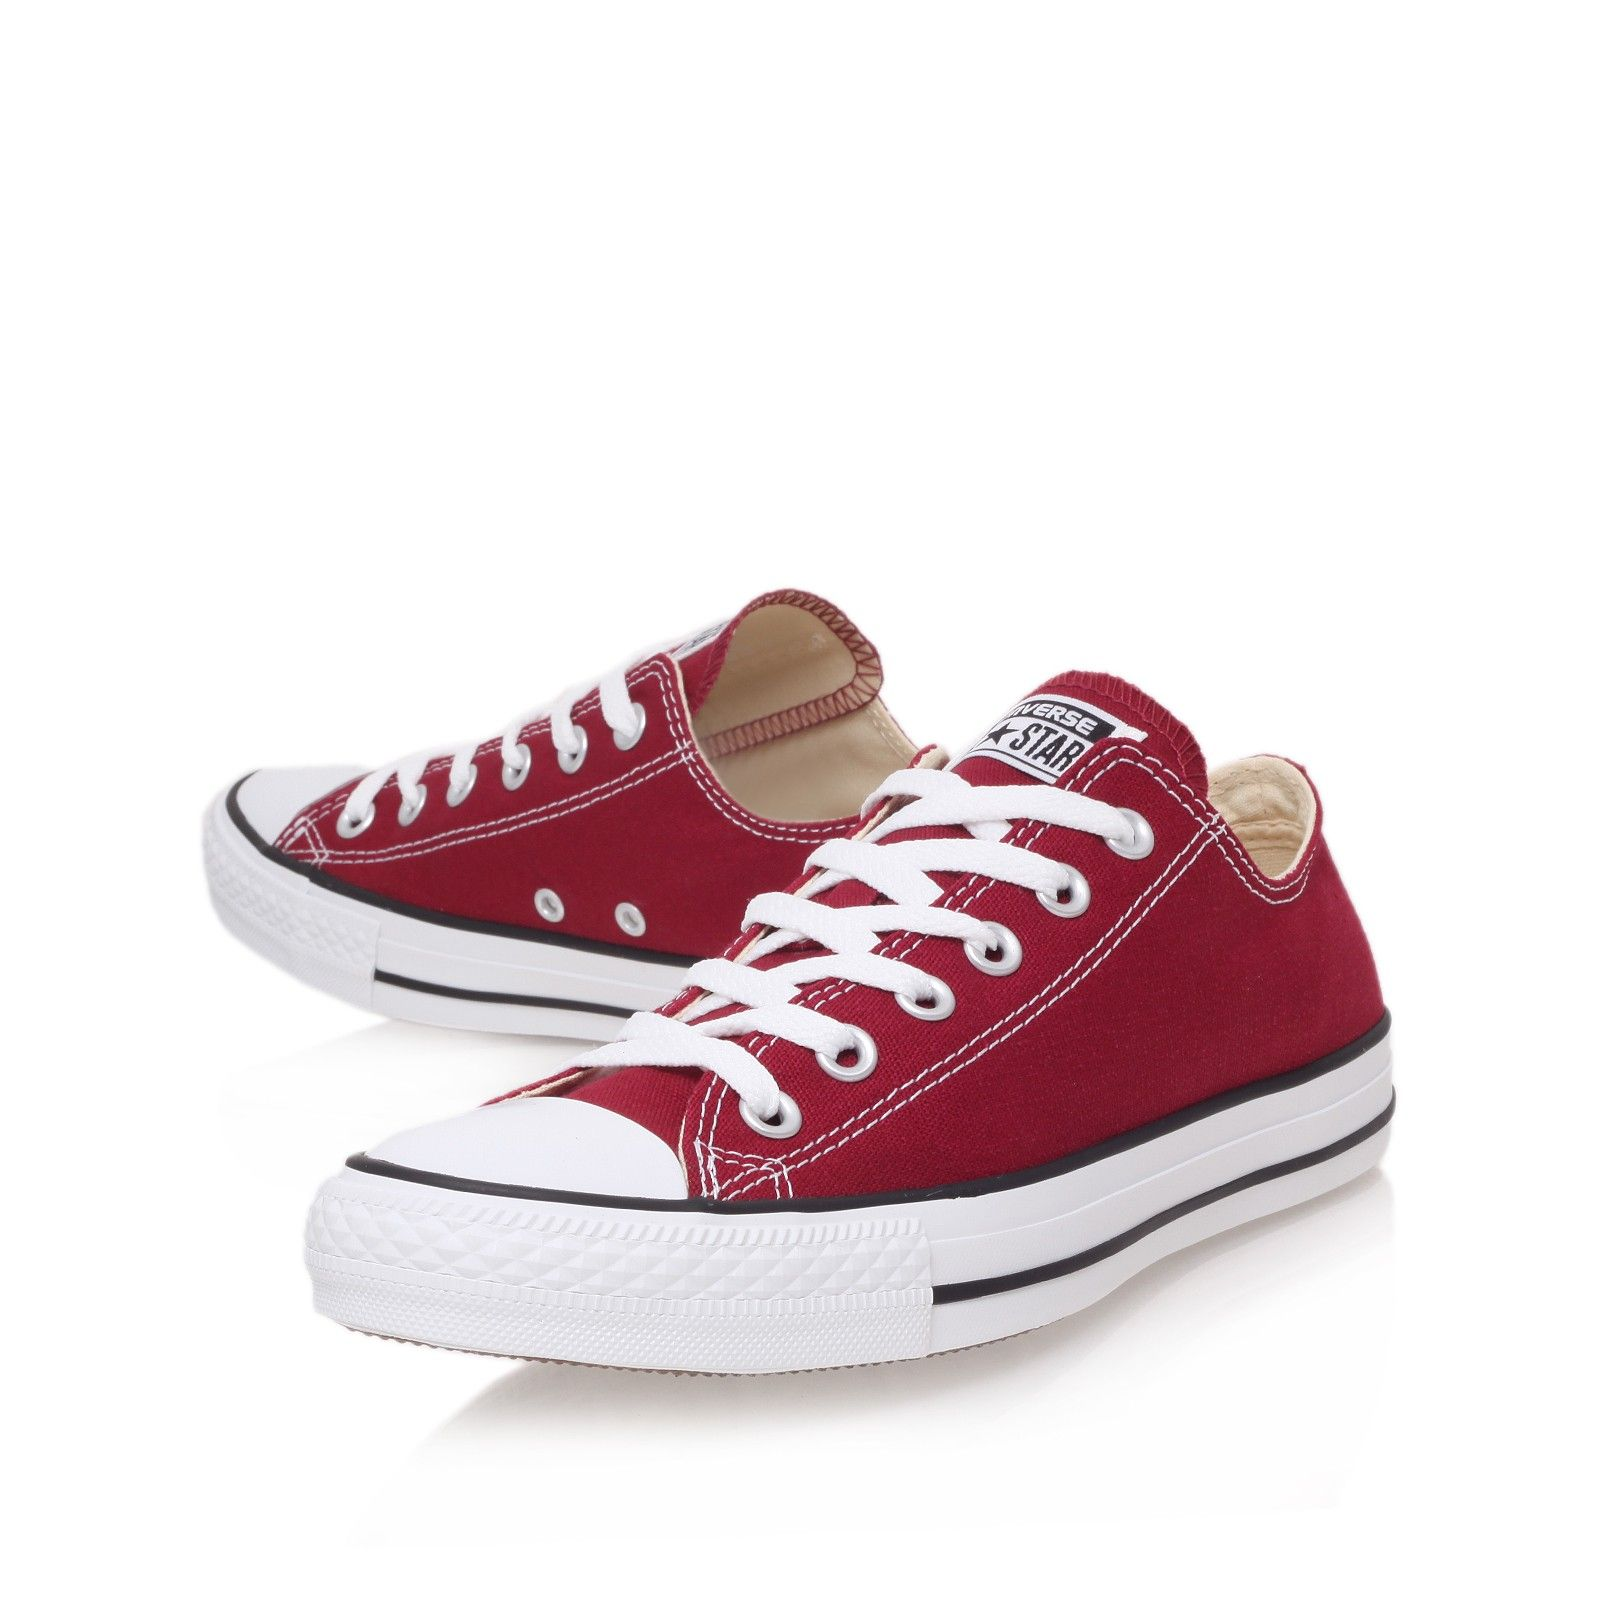 all star low wine flat low top trainers from Converse